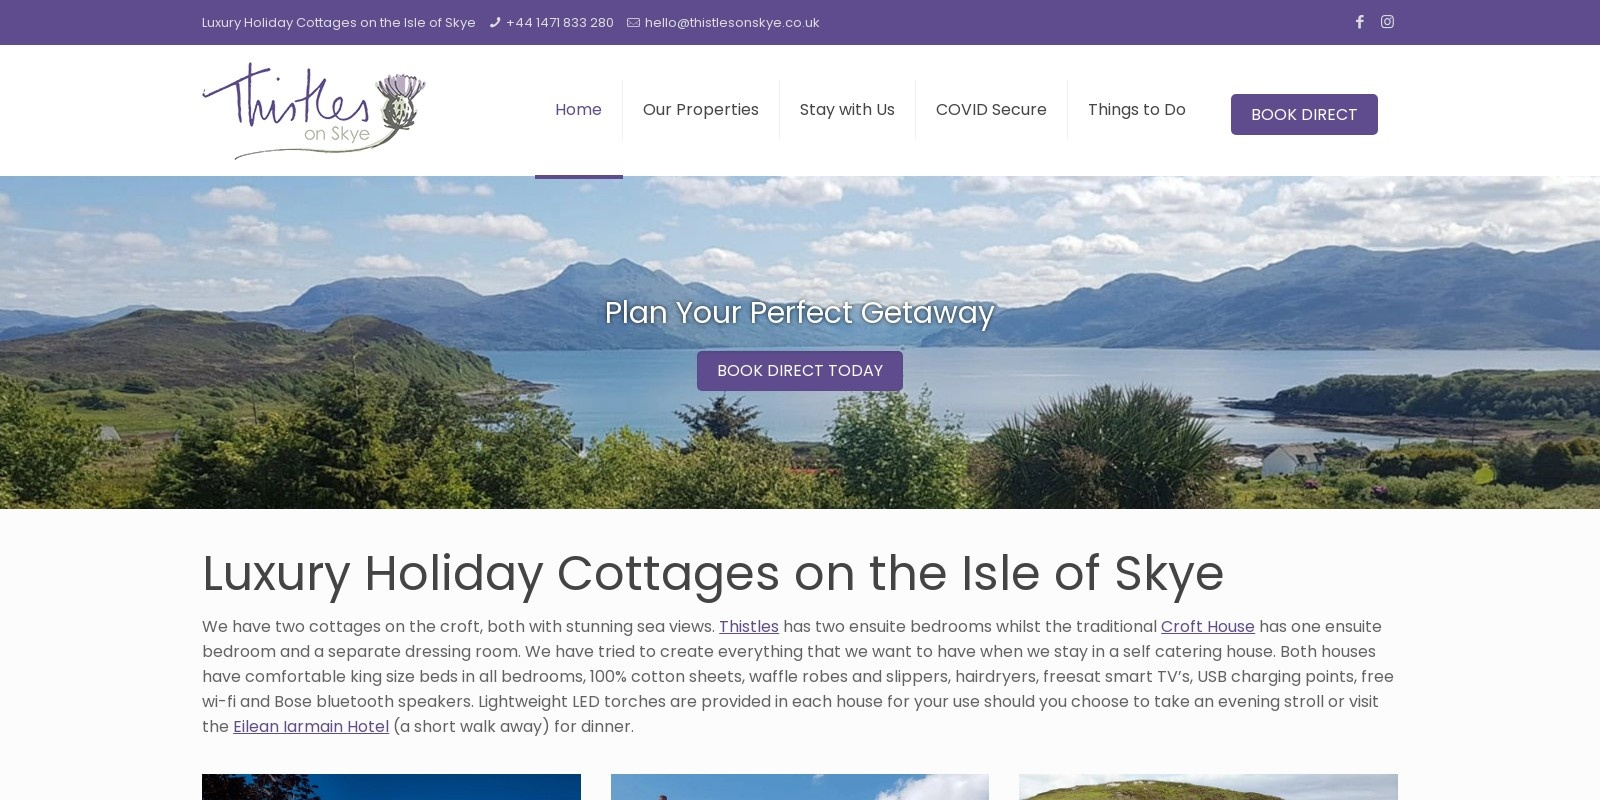 Preview of https://www.thistlesonskye.co.uk